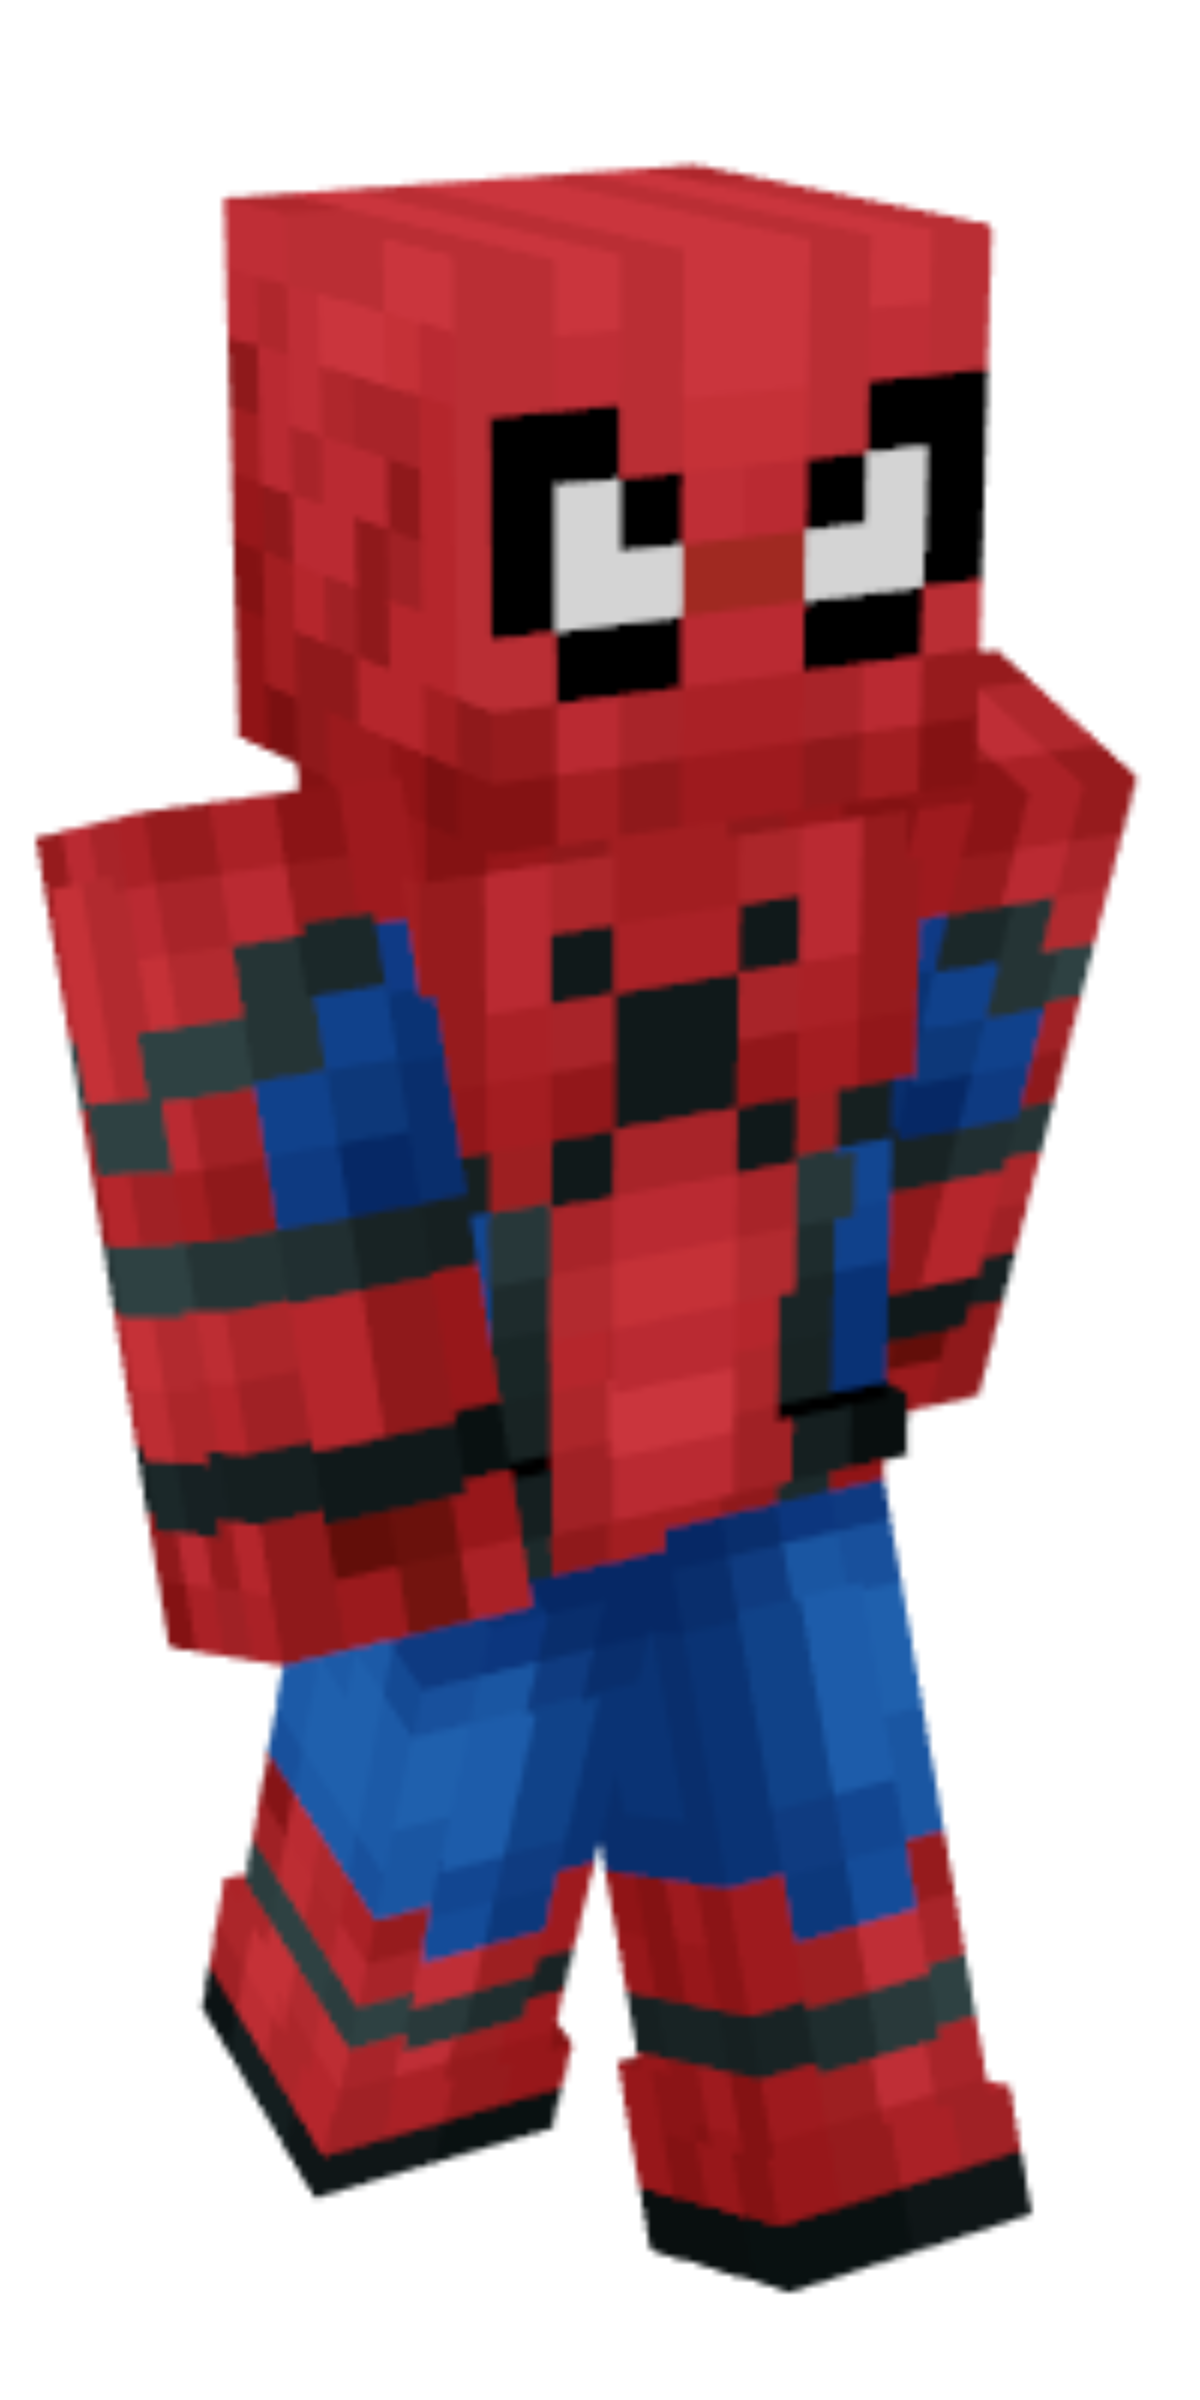 These Are the Best Spiderman Minecraft Skins and We Cannot Wait to